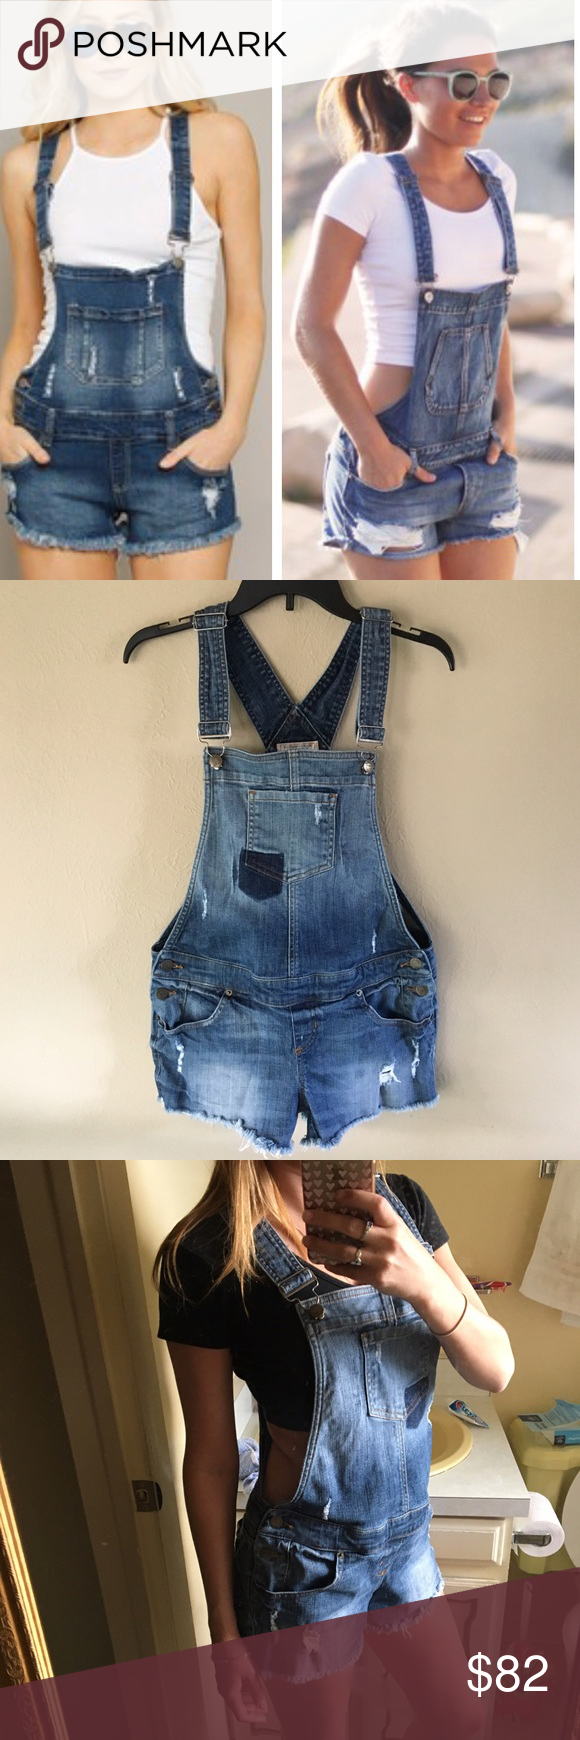 7661308d090 Guess • Vintage denim overall playsuit romper Vintage Guess denim jean  overall style romper playsuit.